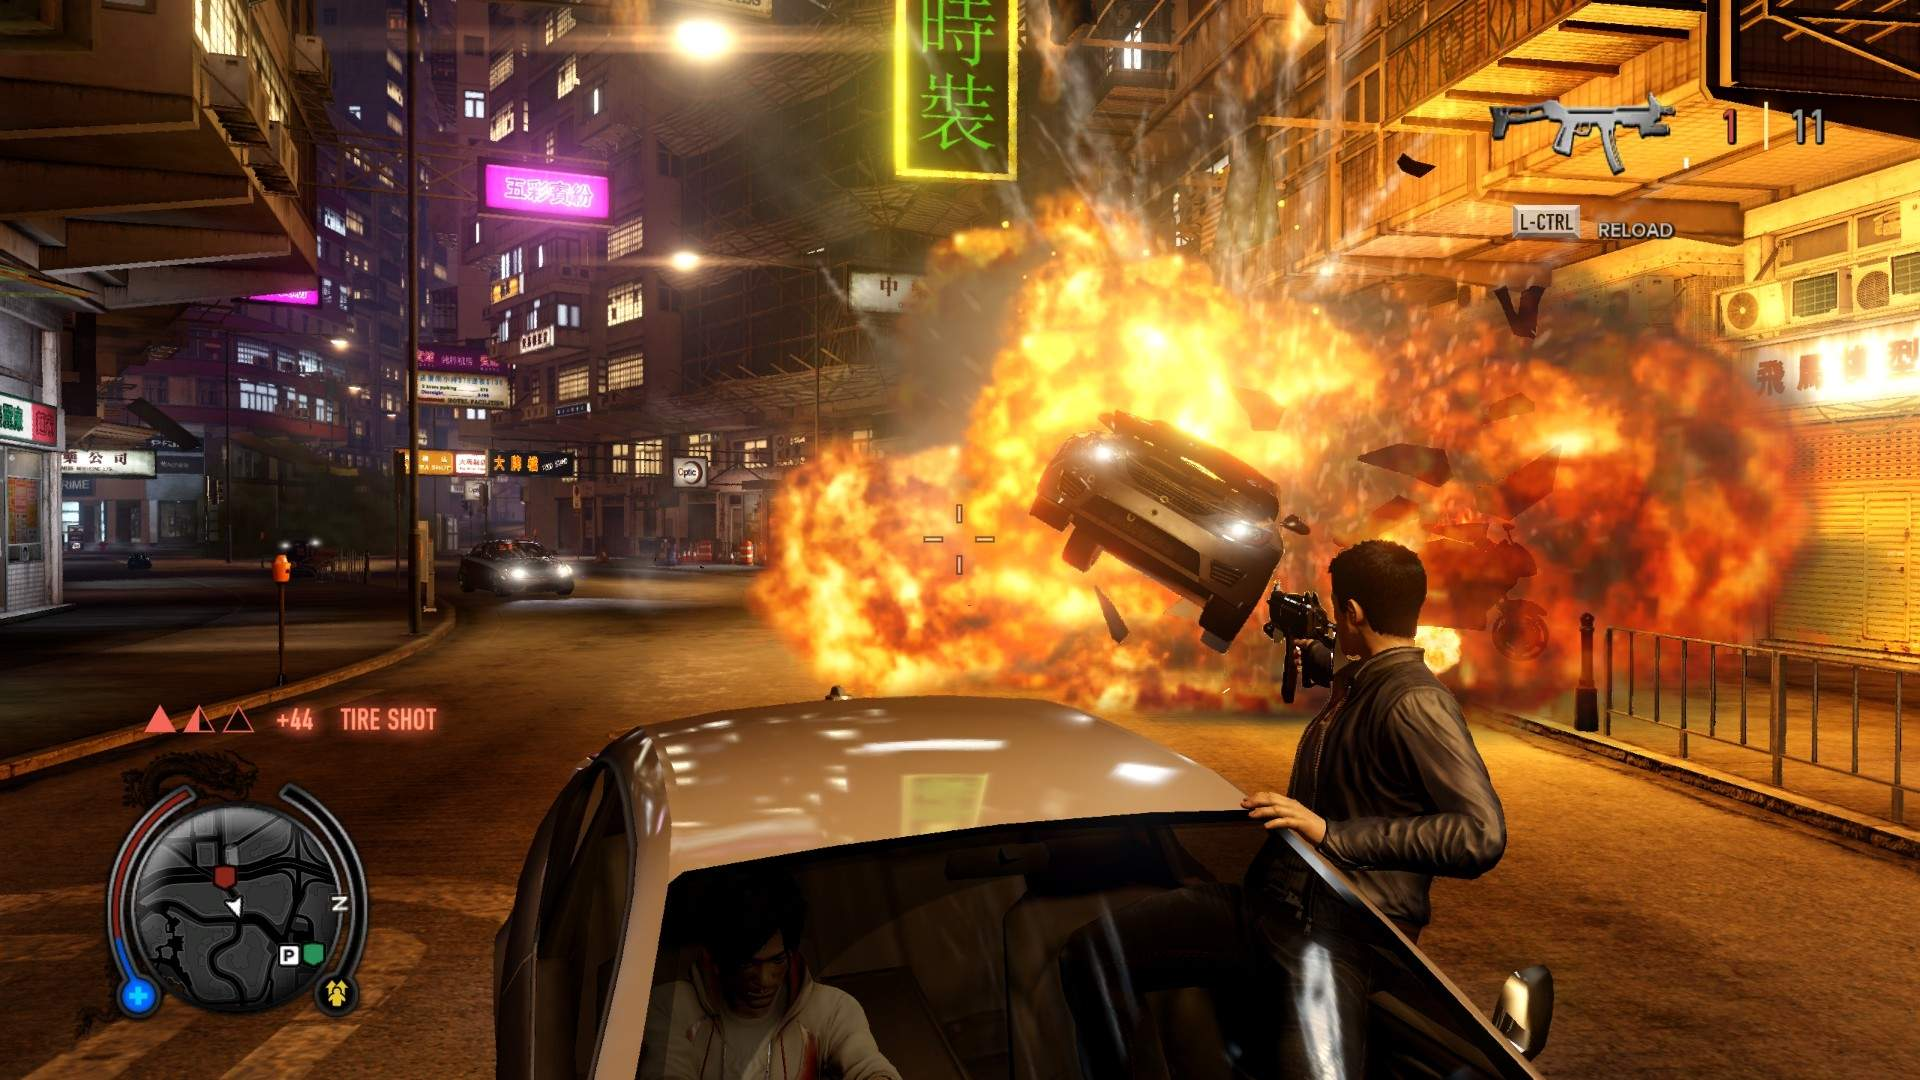 Gameplay footage from the cancelled version of True Crime: Hong Kong/Sleeping Dogs